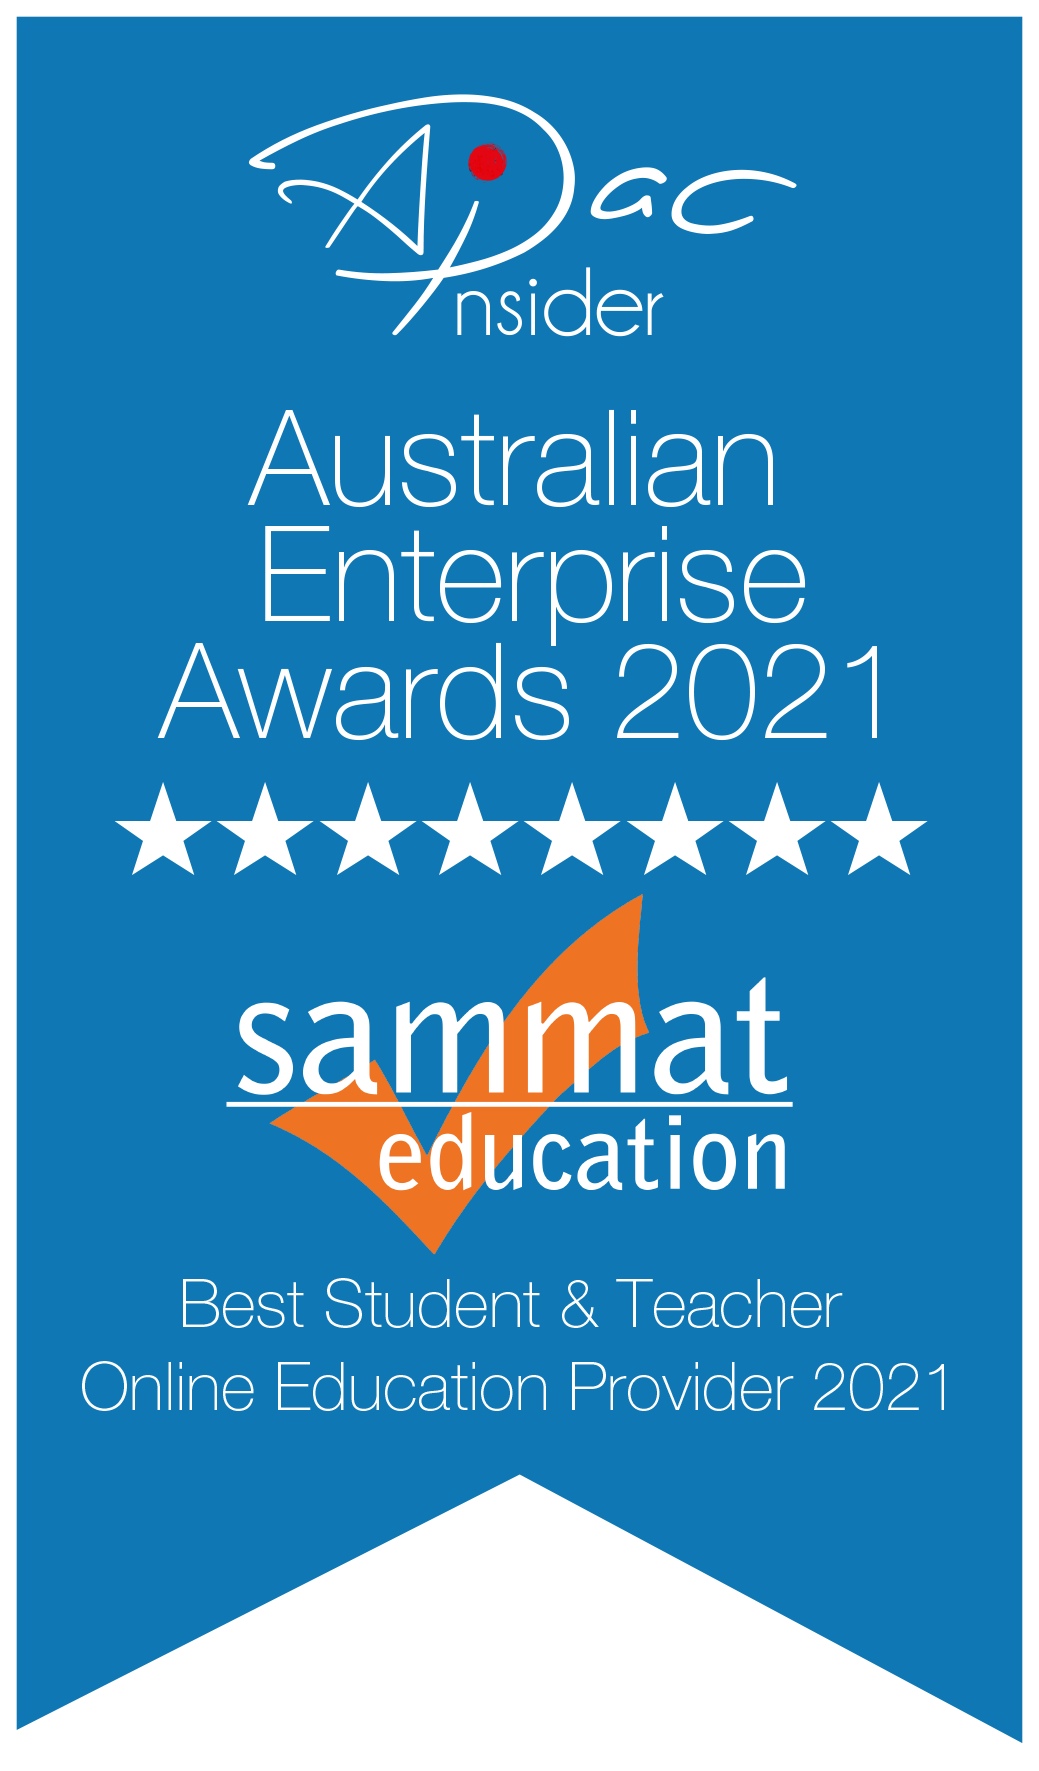 Best Student & Teacher Online Education Provider 2021!